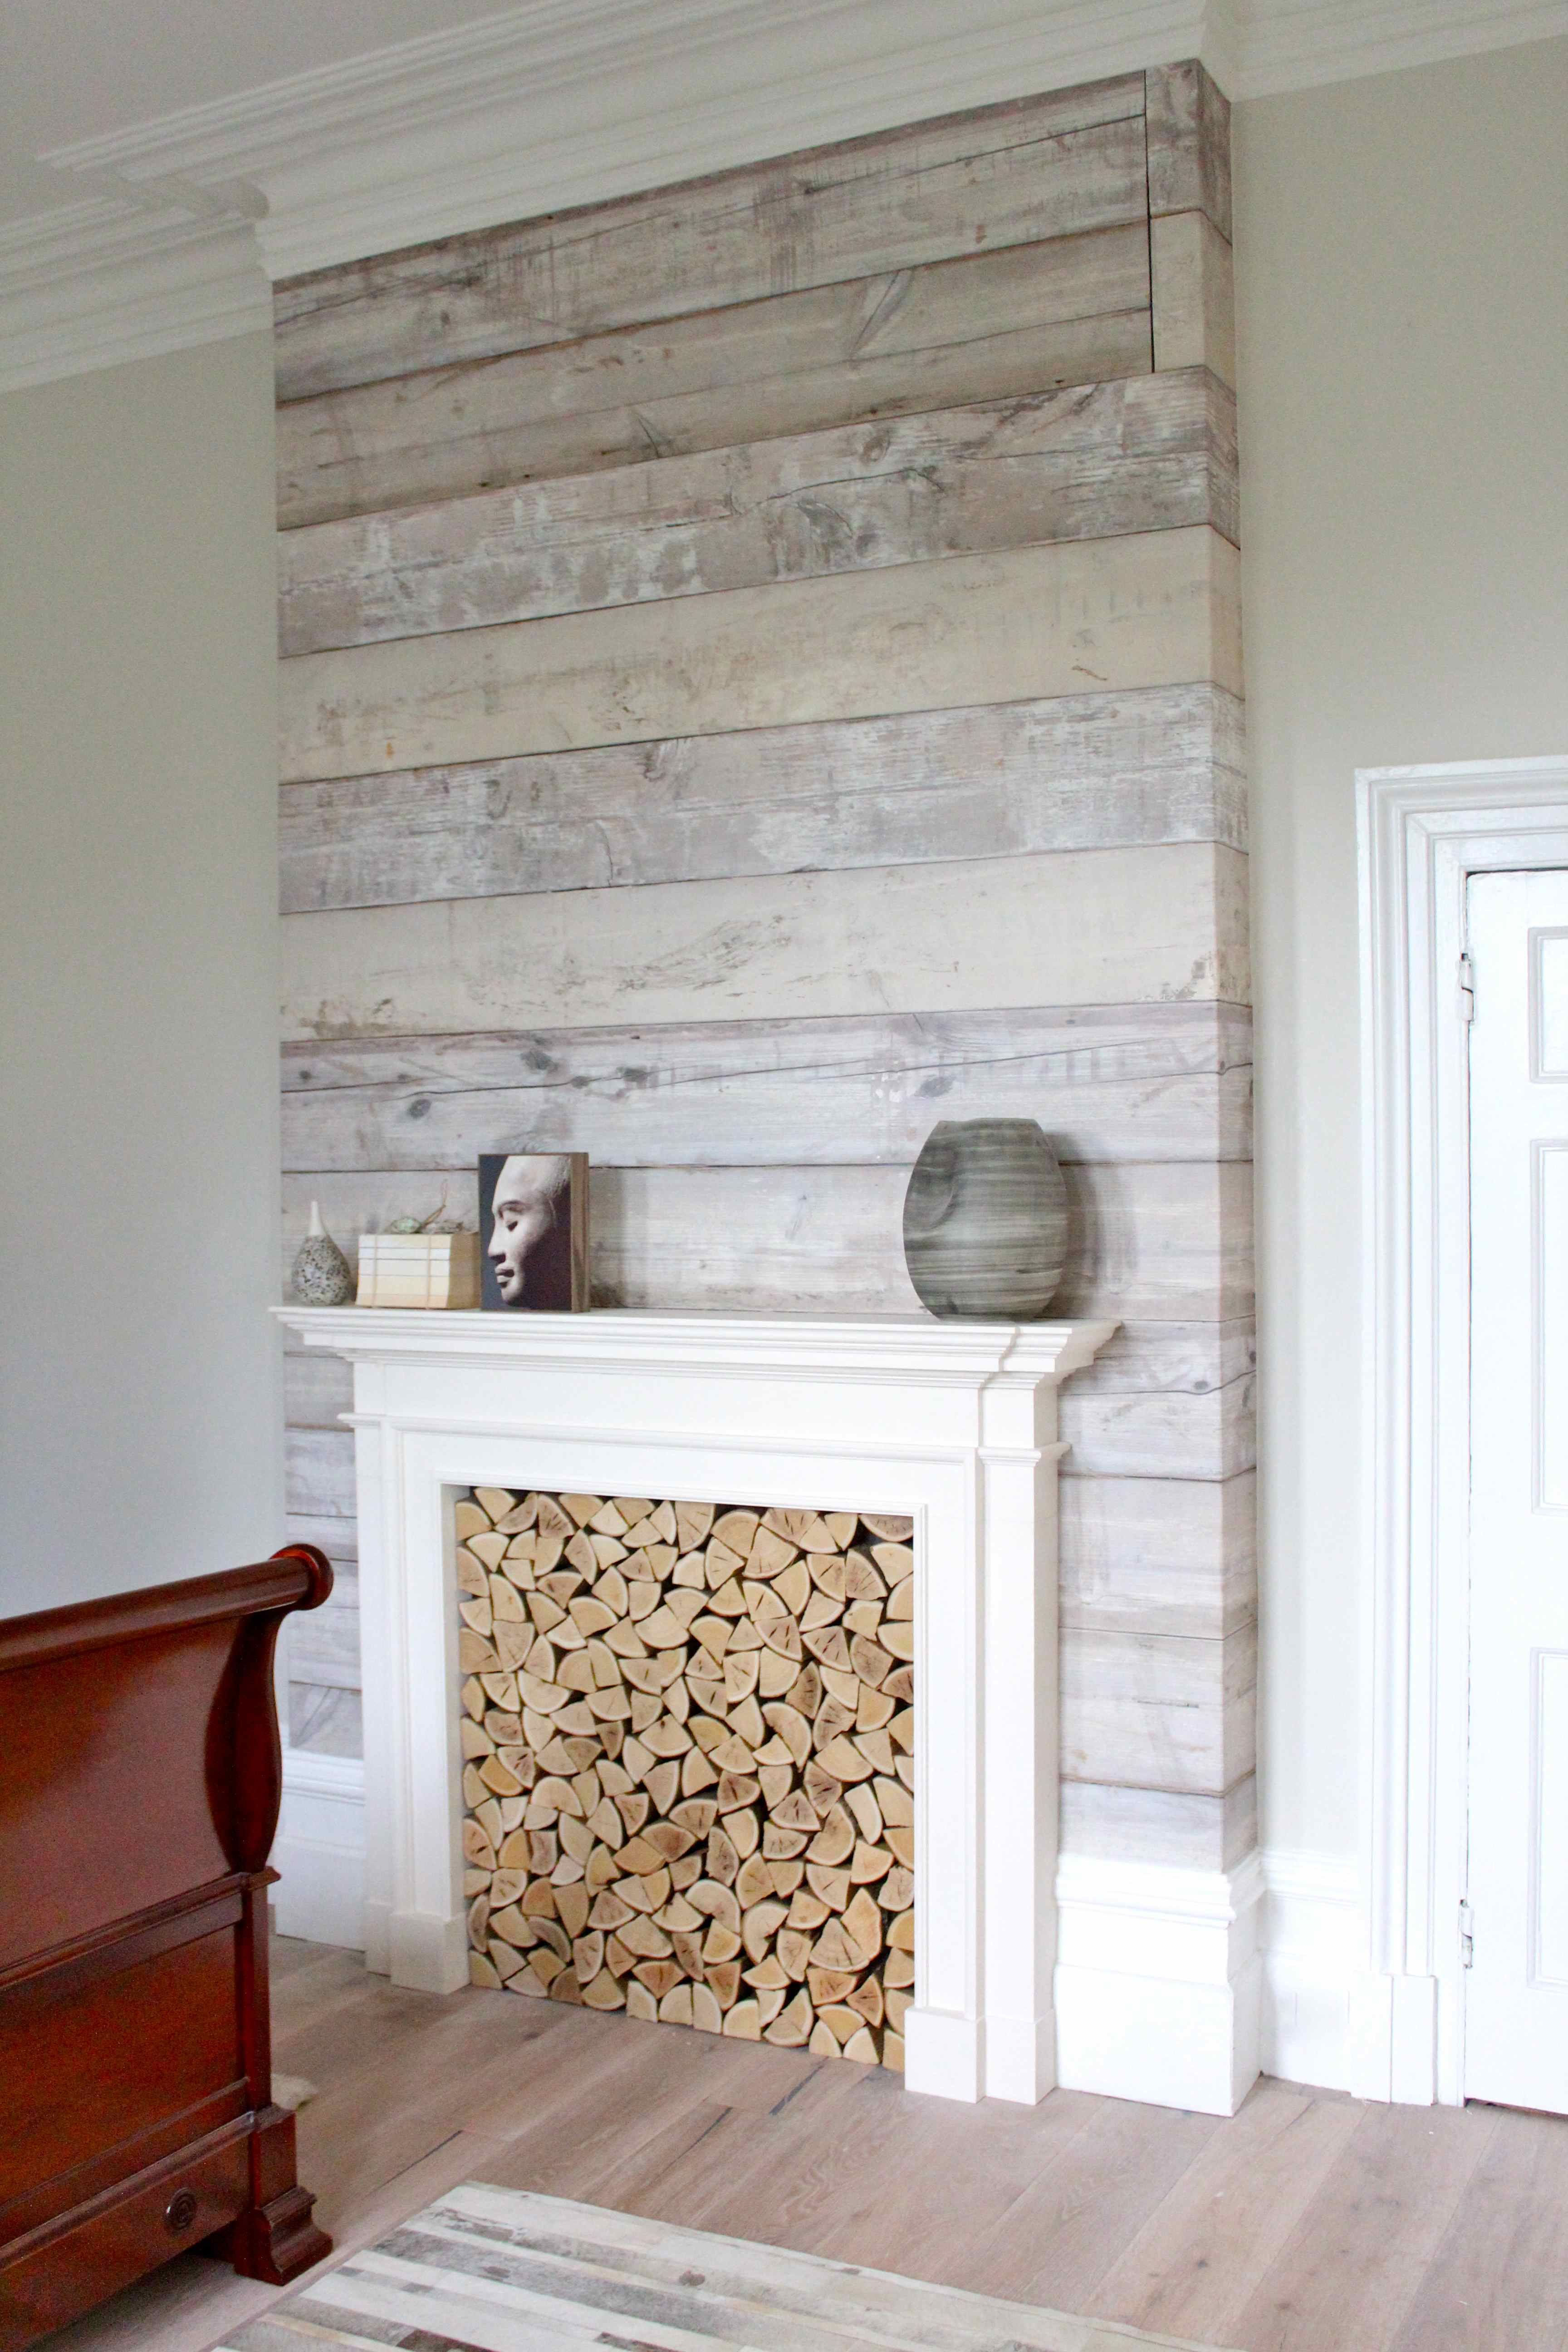 Are You Kidding Me First This Is Absolutely Gorgeous And I Want It Second That Is Walllpaper Woodplank Wallpaper On Chimney Breast